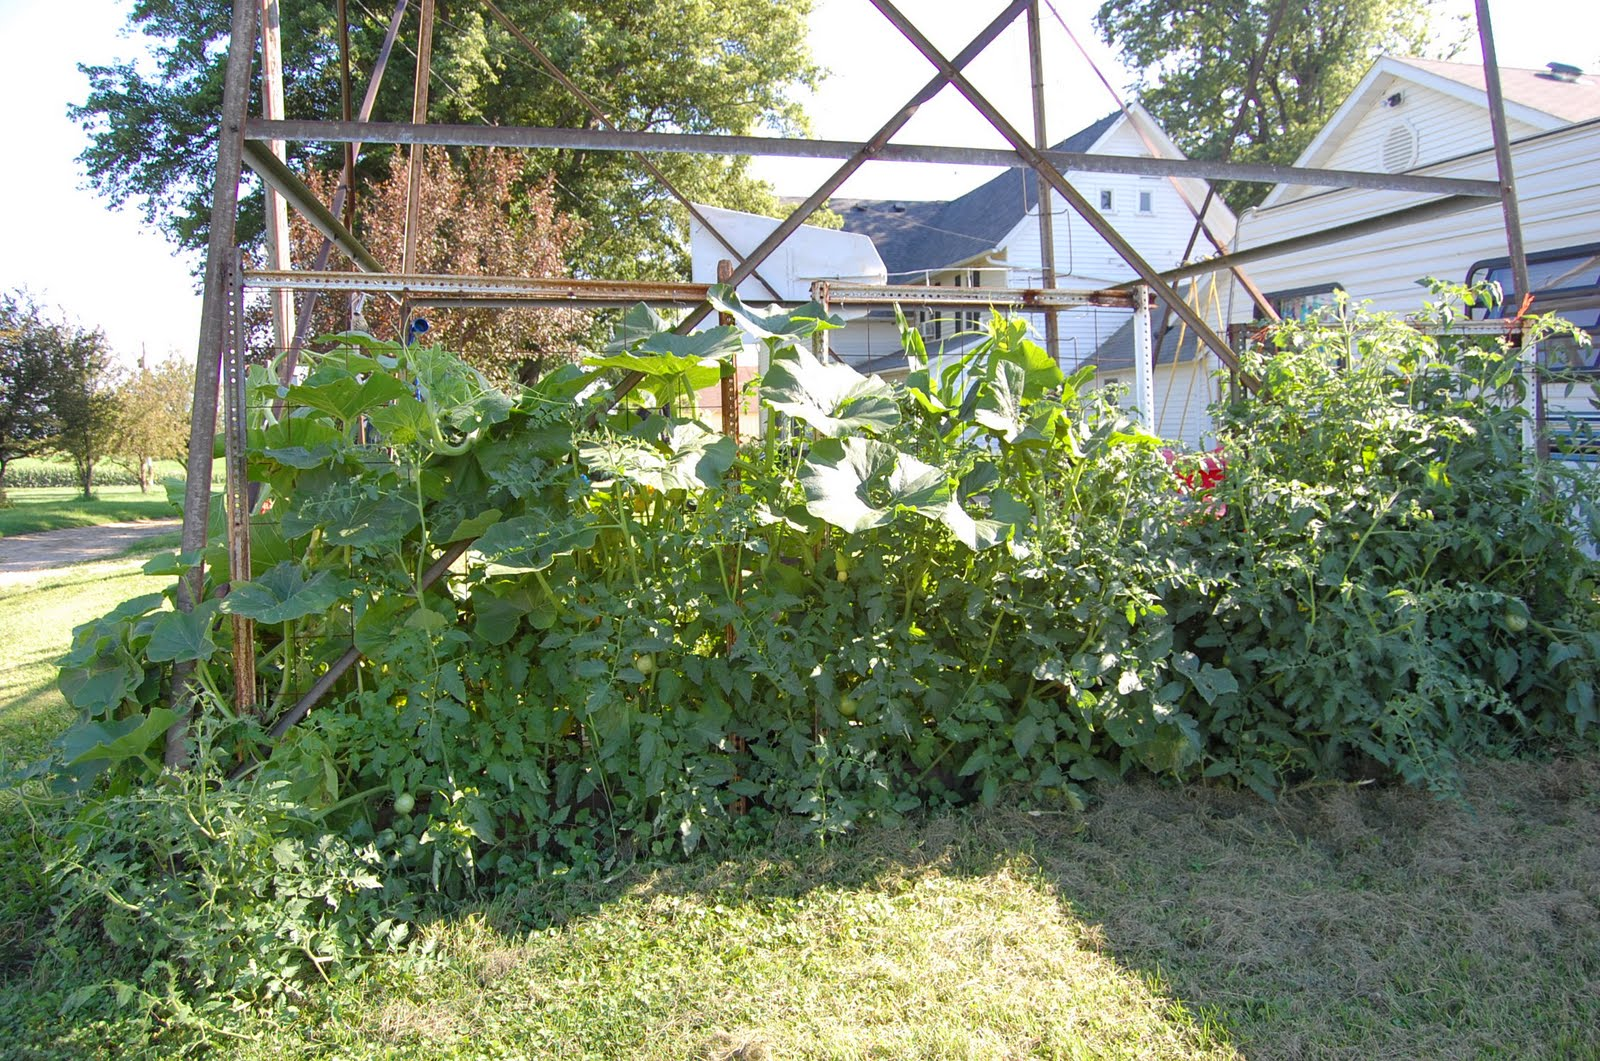 The Pumpkin On The Left Is Taking Over That Whole Side Of The Garden. The  Tomatoes Are As Tall As I Am In Some Cases And Have Fruit.